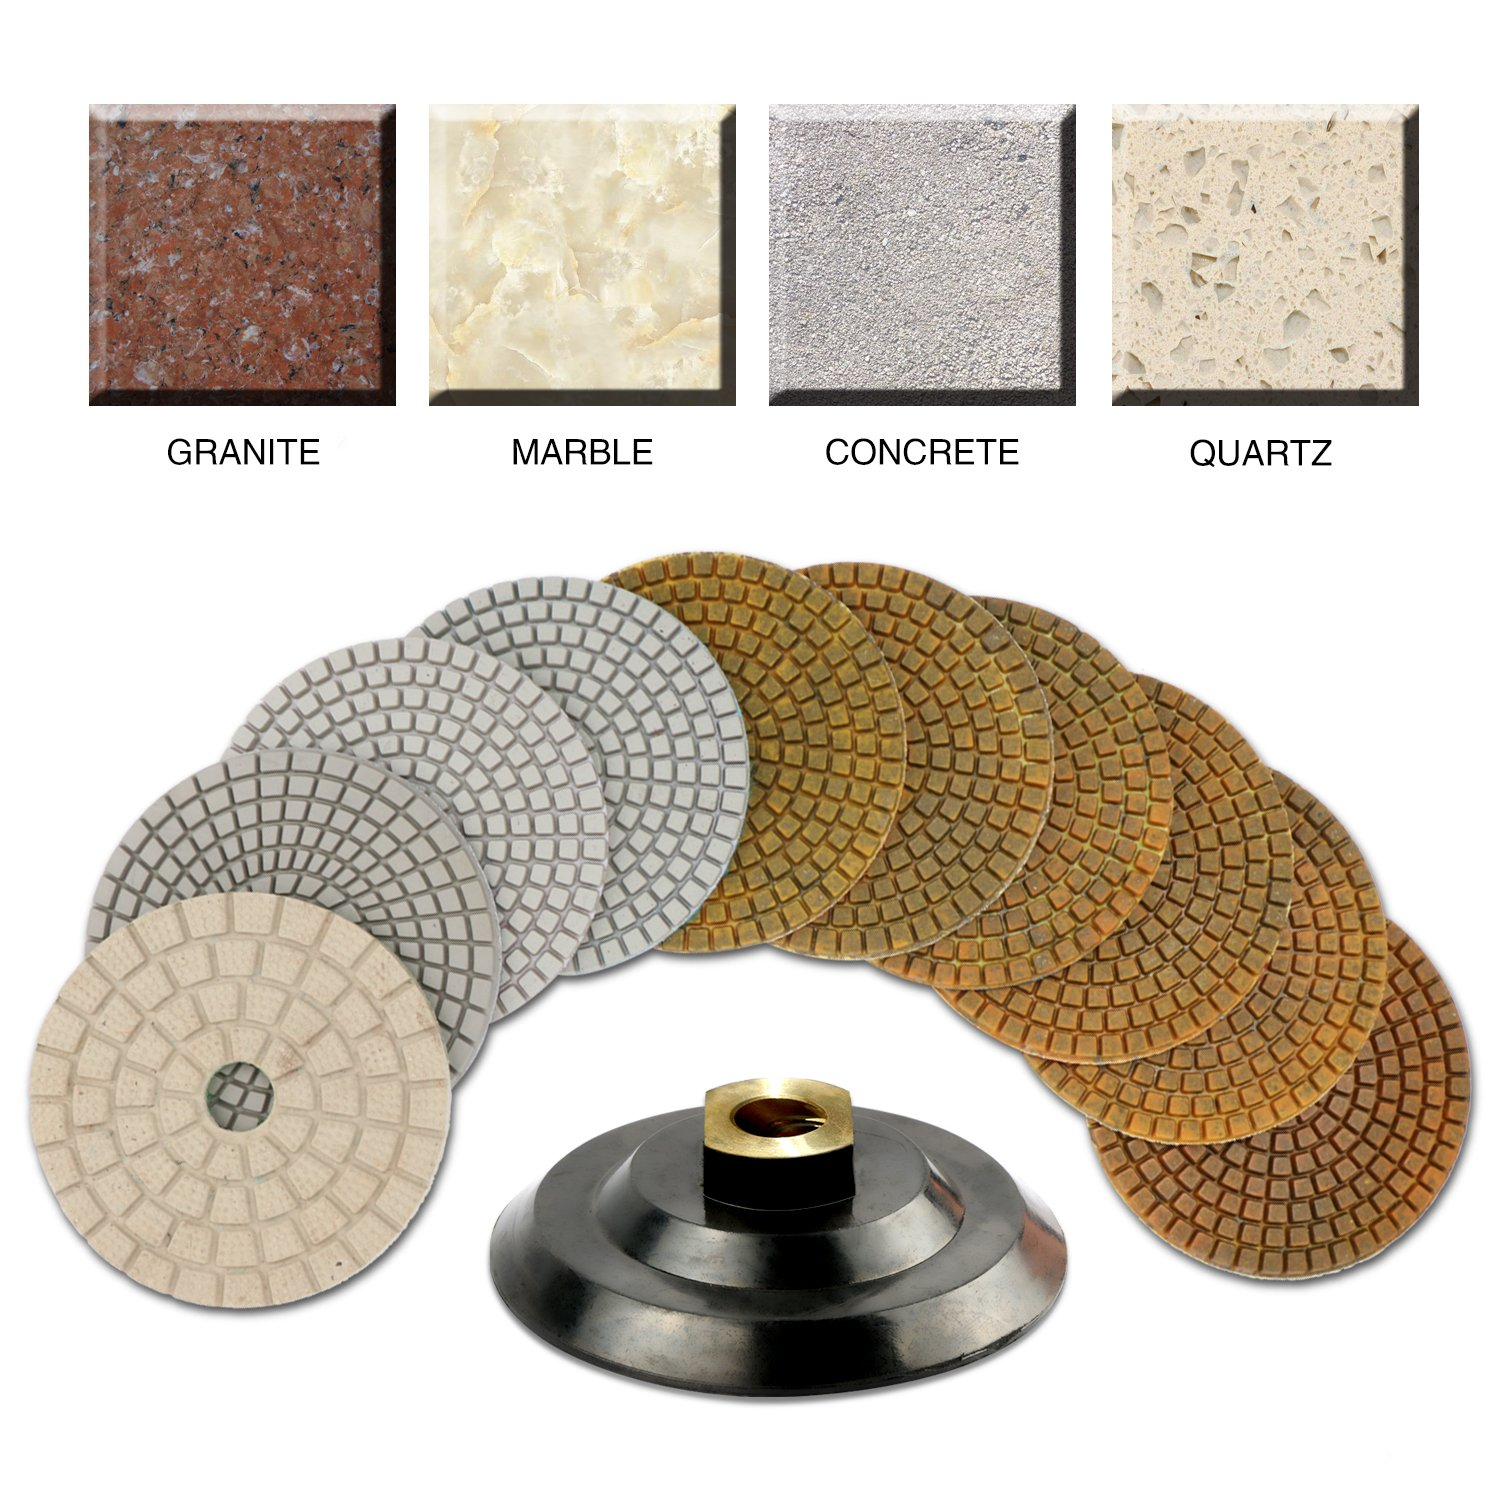 CHANGE MOORE Wet Diamond Polishing Pads Set 4 Inch for Marble Travertine Concrete Quartz Countertop Floor Stone 10 PCS and 1 Velcro Rubber backing pad (5/8'' arbor) by CHANGE MOORE (Image #5)